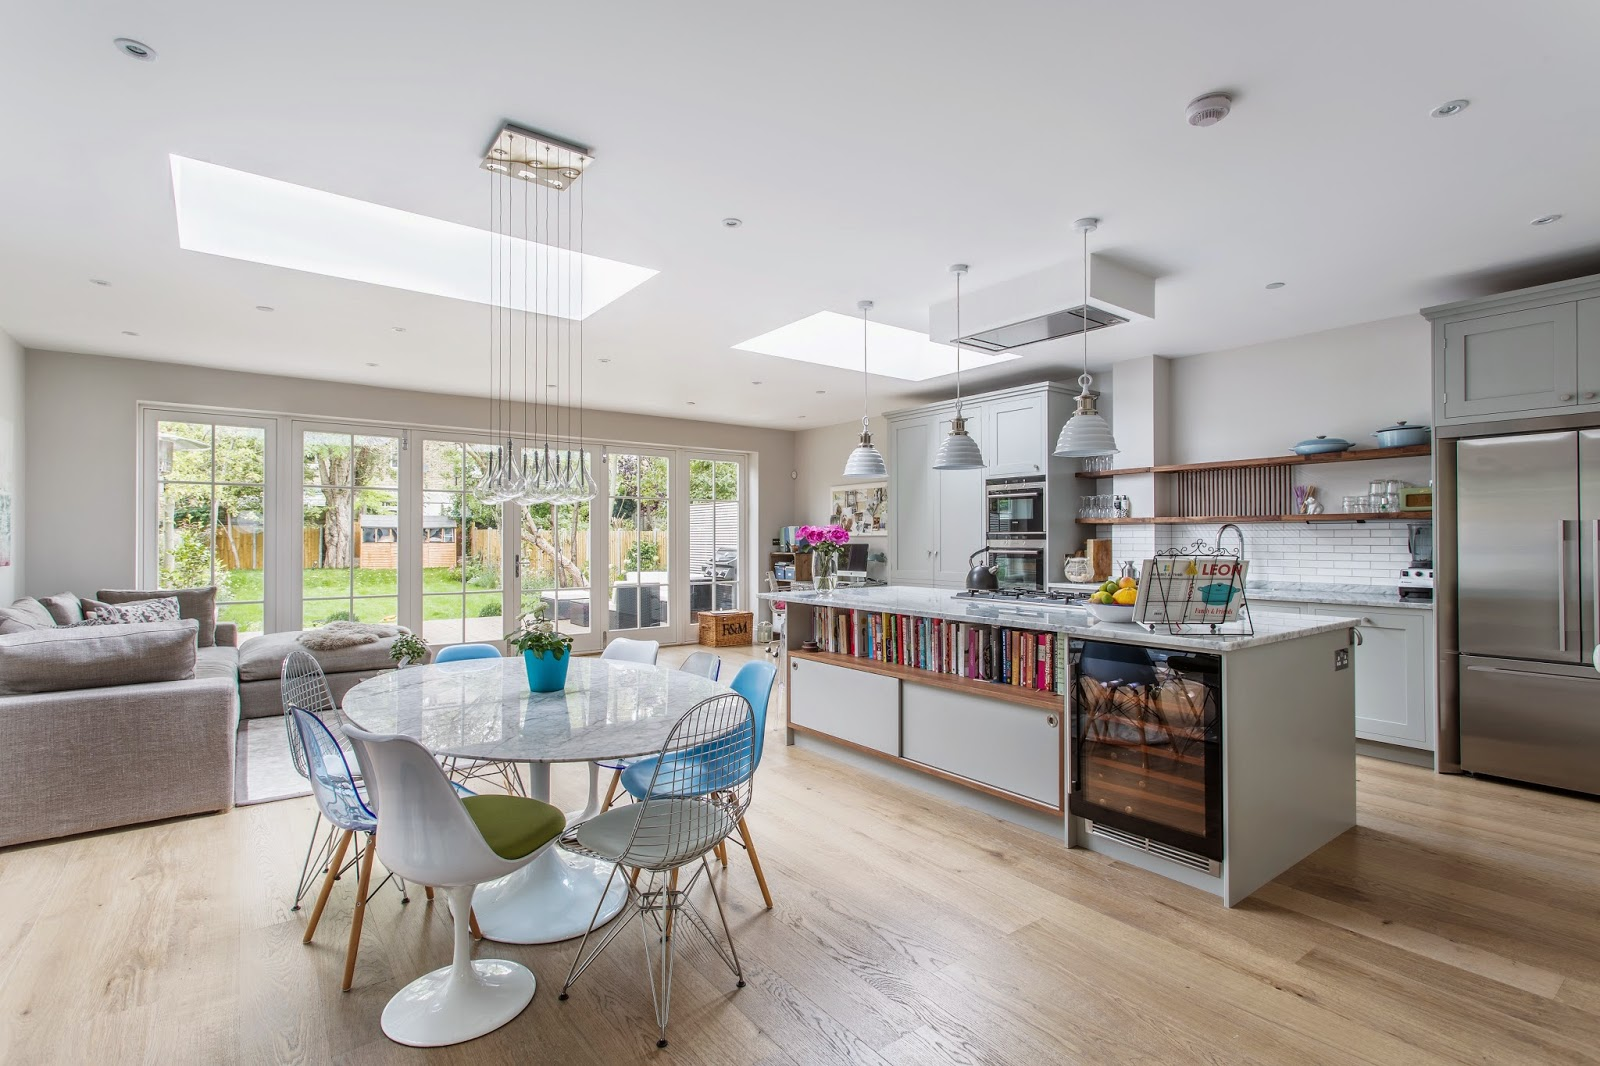 Kitchen design south west london home laura butler madden for Kitchen design london